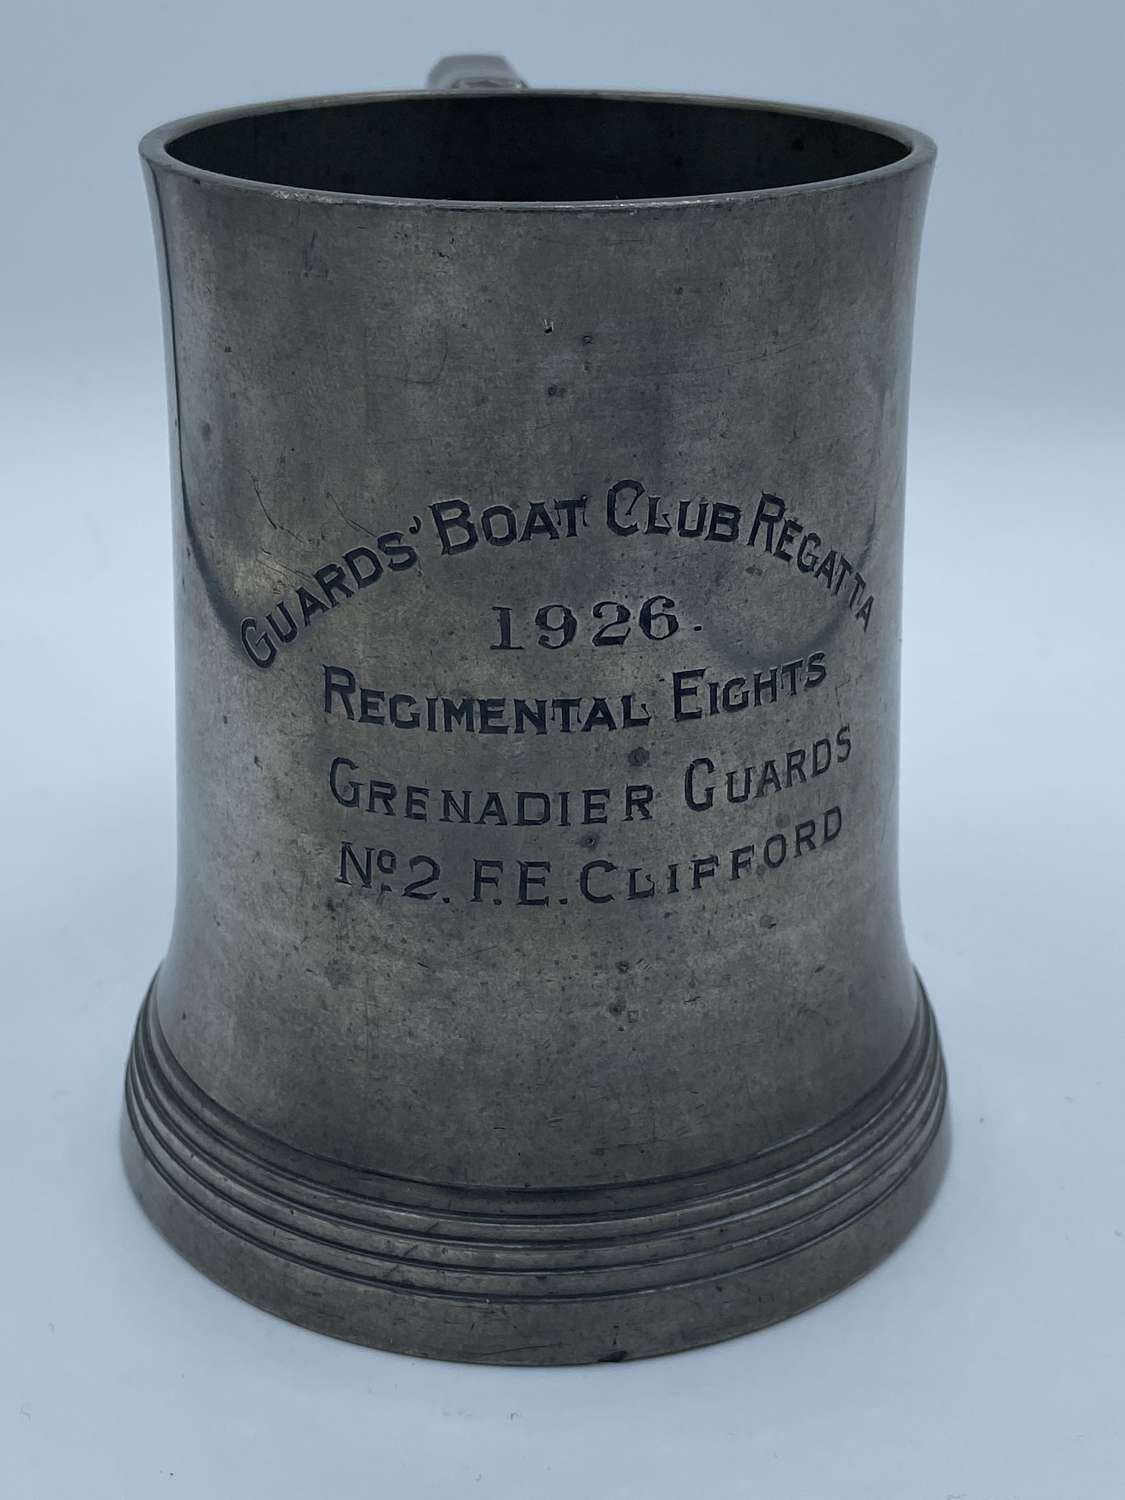 WW1 Inter War 1926 Guards Boat Club Regatta Regimental Eights No2 L